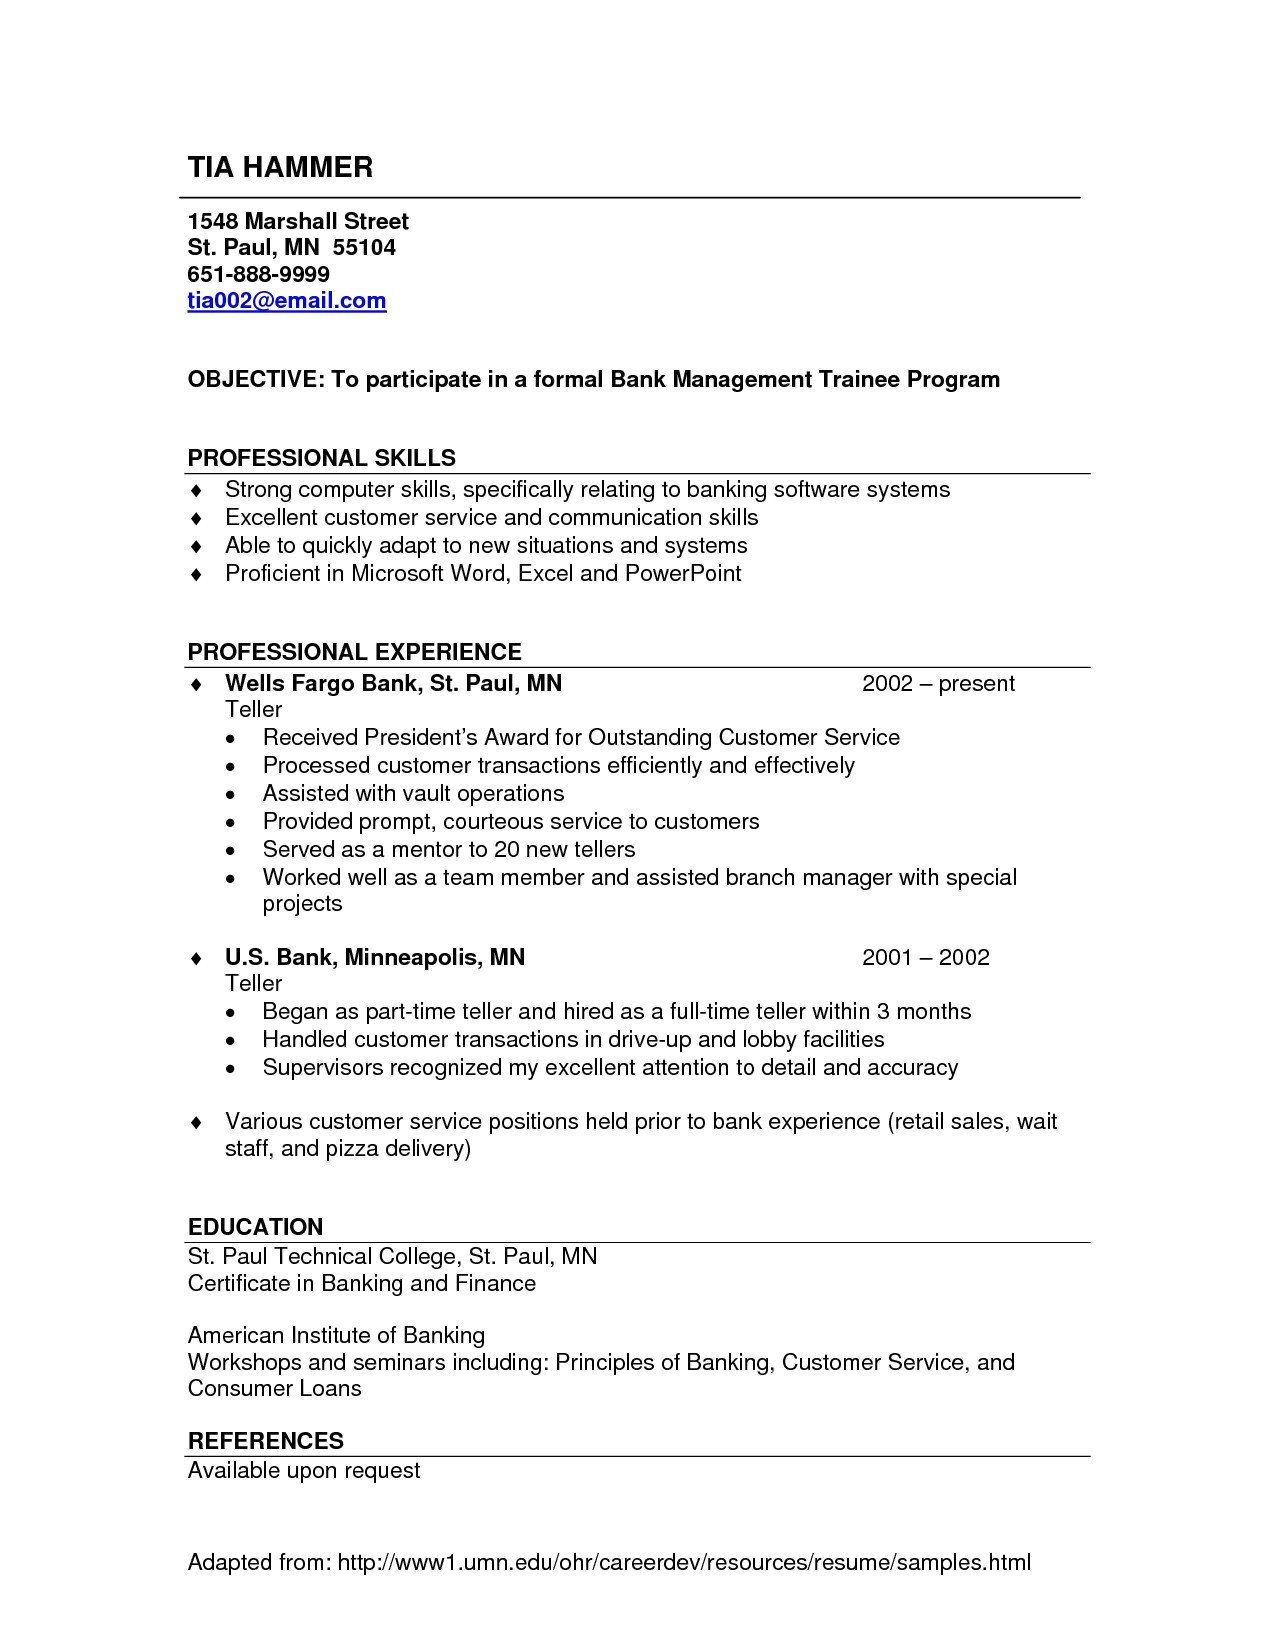 Resume Examples for Supervisor Position - Apa Resume Template New Examples A Resume Fresh Resume Examples 0d